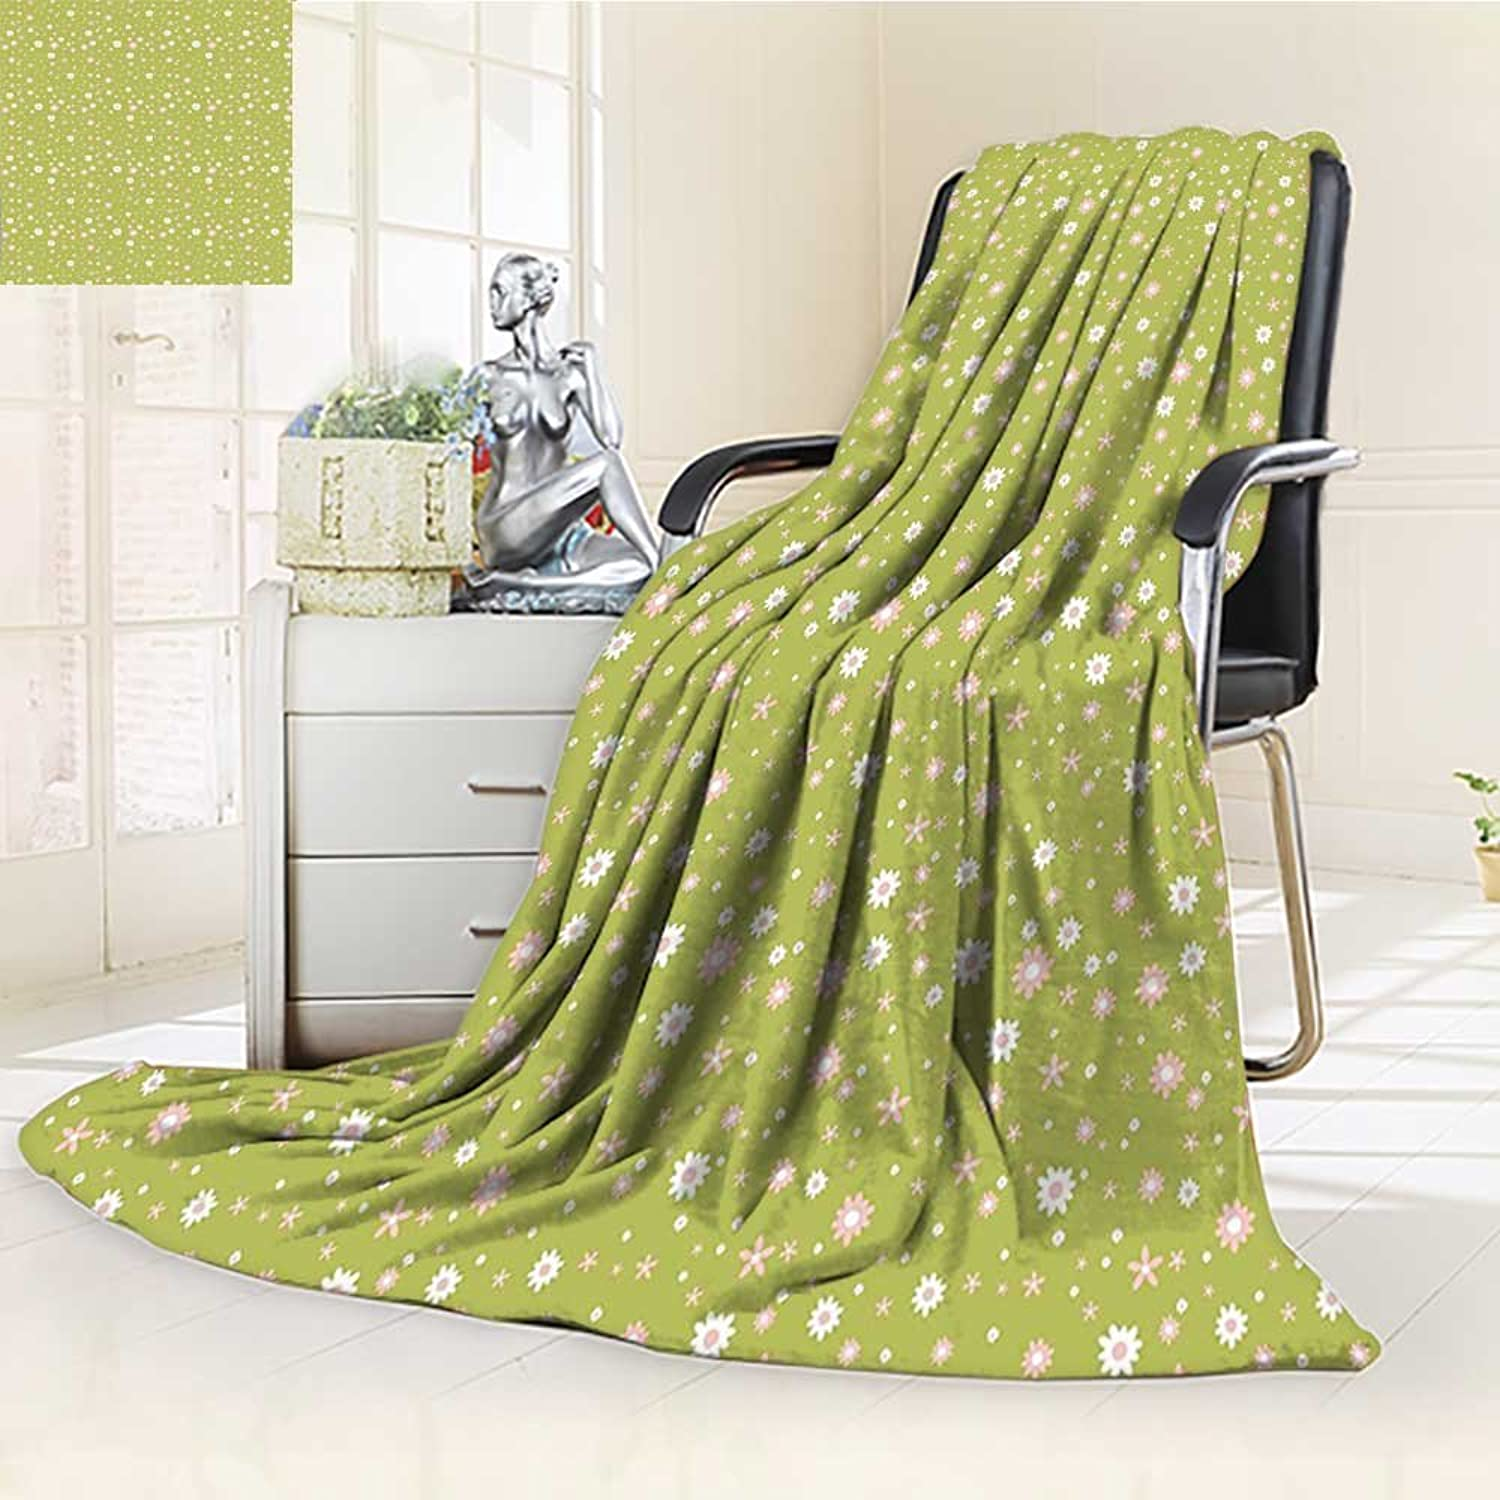 YOYI-HOME Digital Printing Duplex Printed Blanket Small Different Spring Flowers Blooms Doodle Style Pattern Green Light Pink White Summer Quilt Comforter  W59 x H39.5